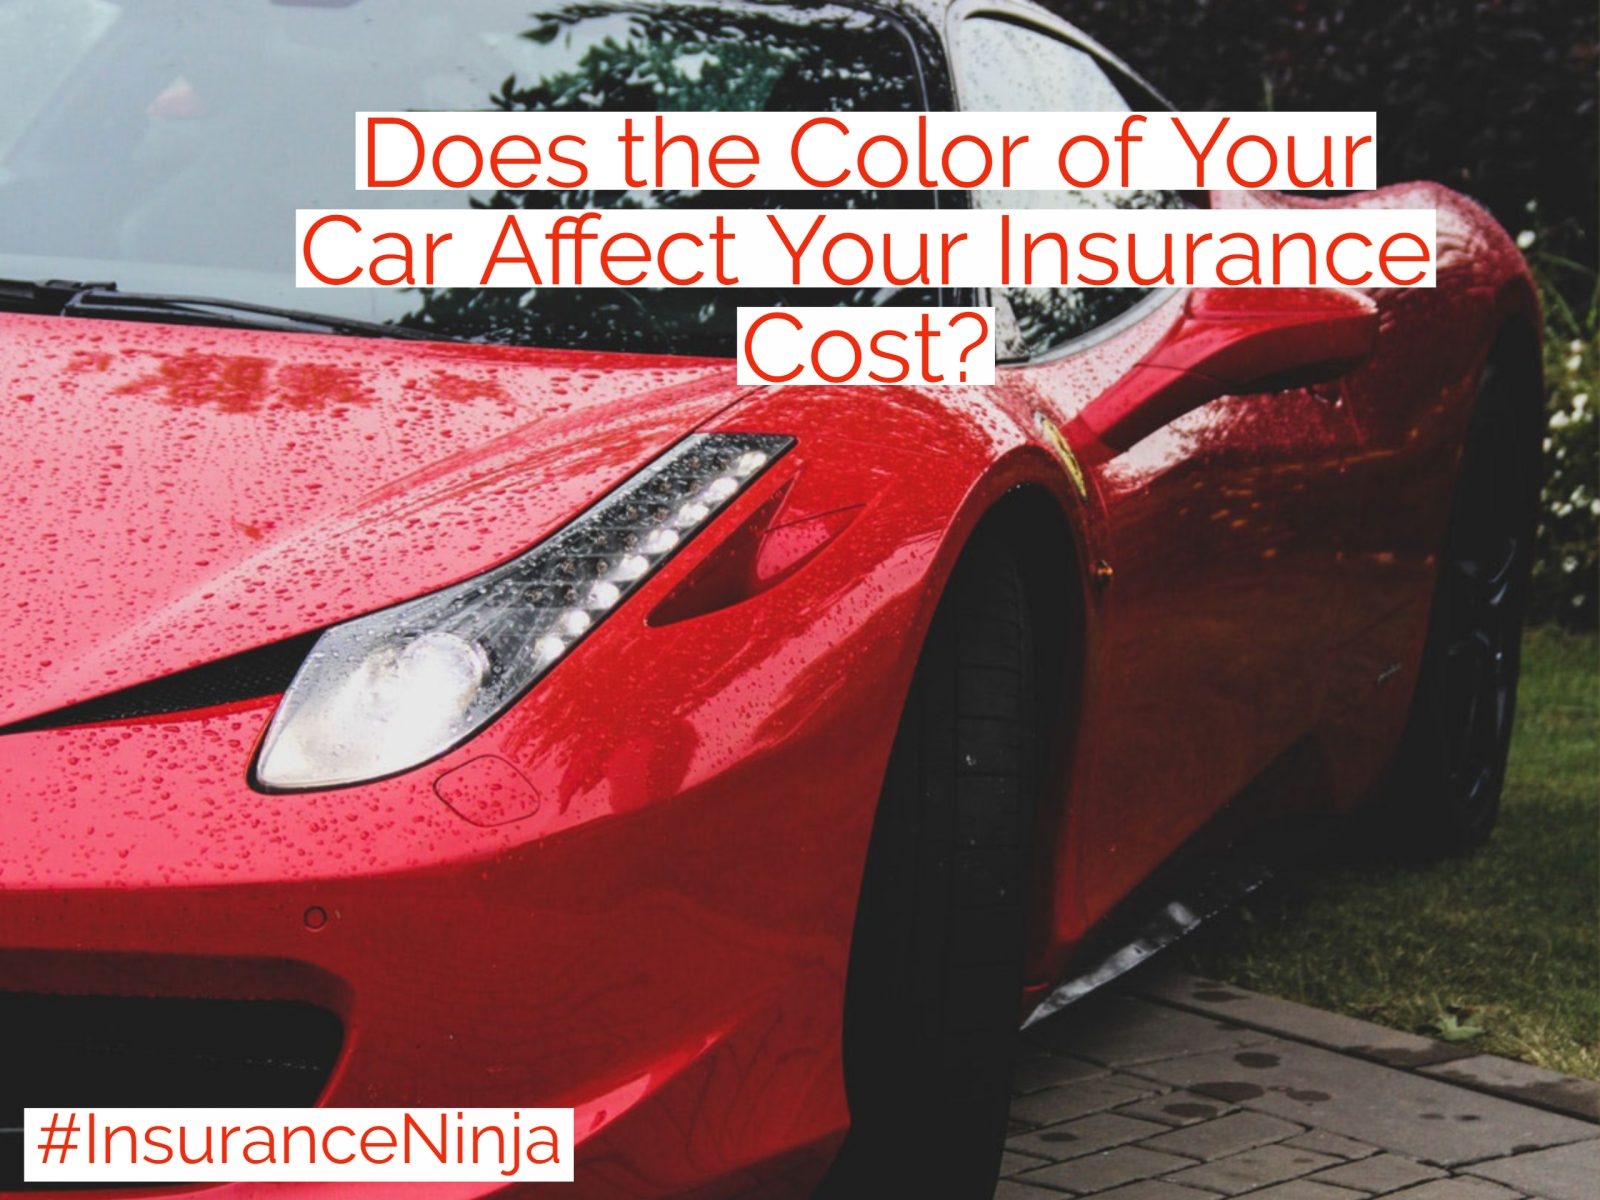 Does the Color of Your Car Affect Your Insurance Cost?